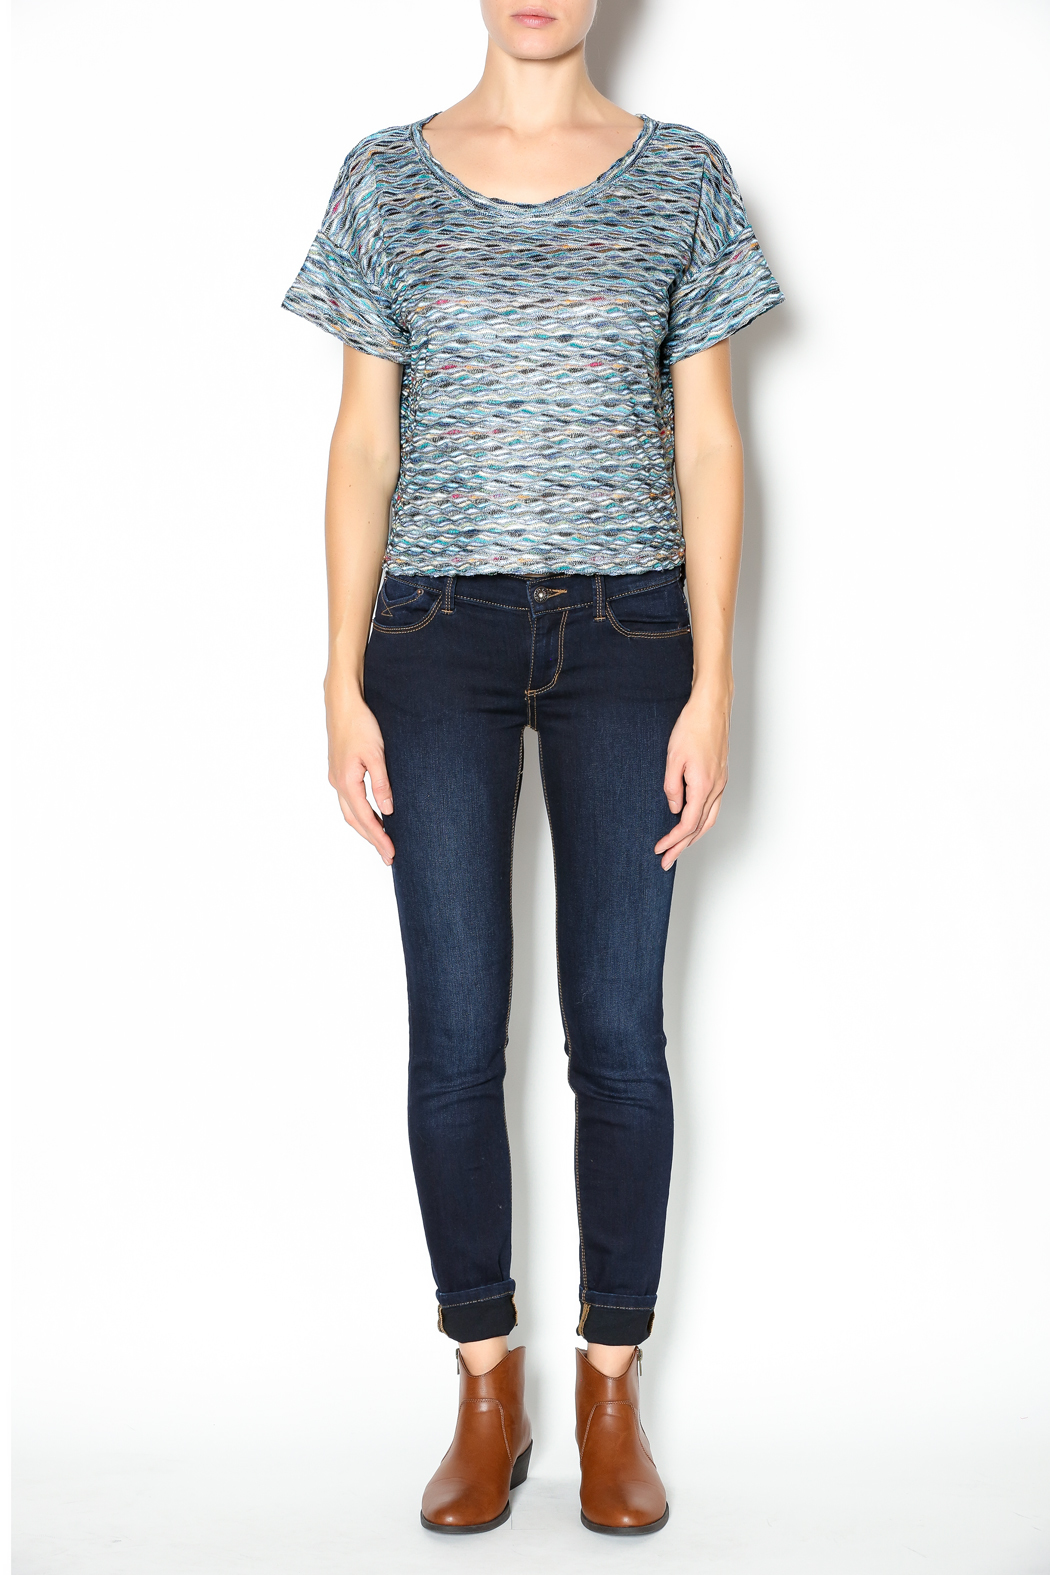 Free People Rainbow Wave Box Tee - Front Full Image